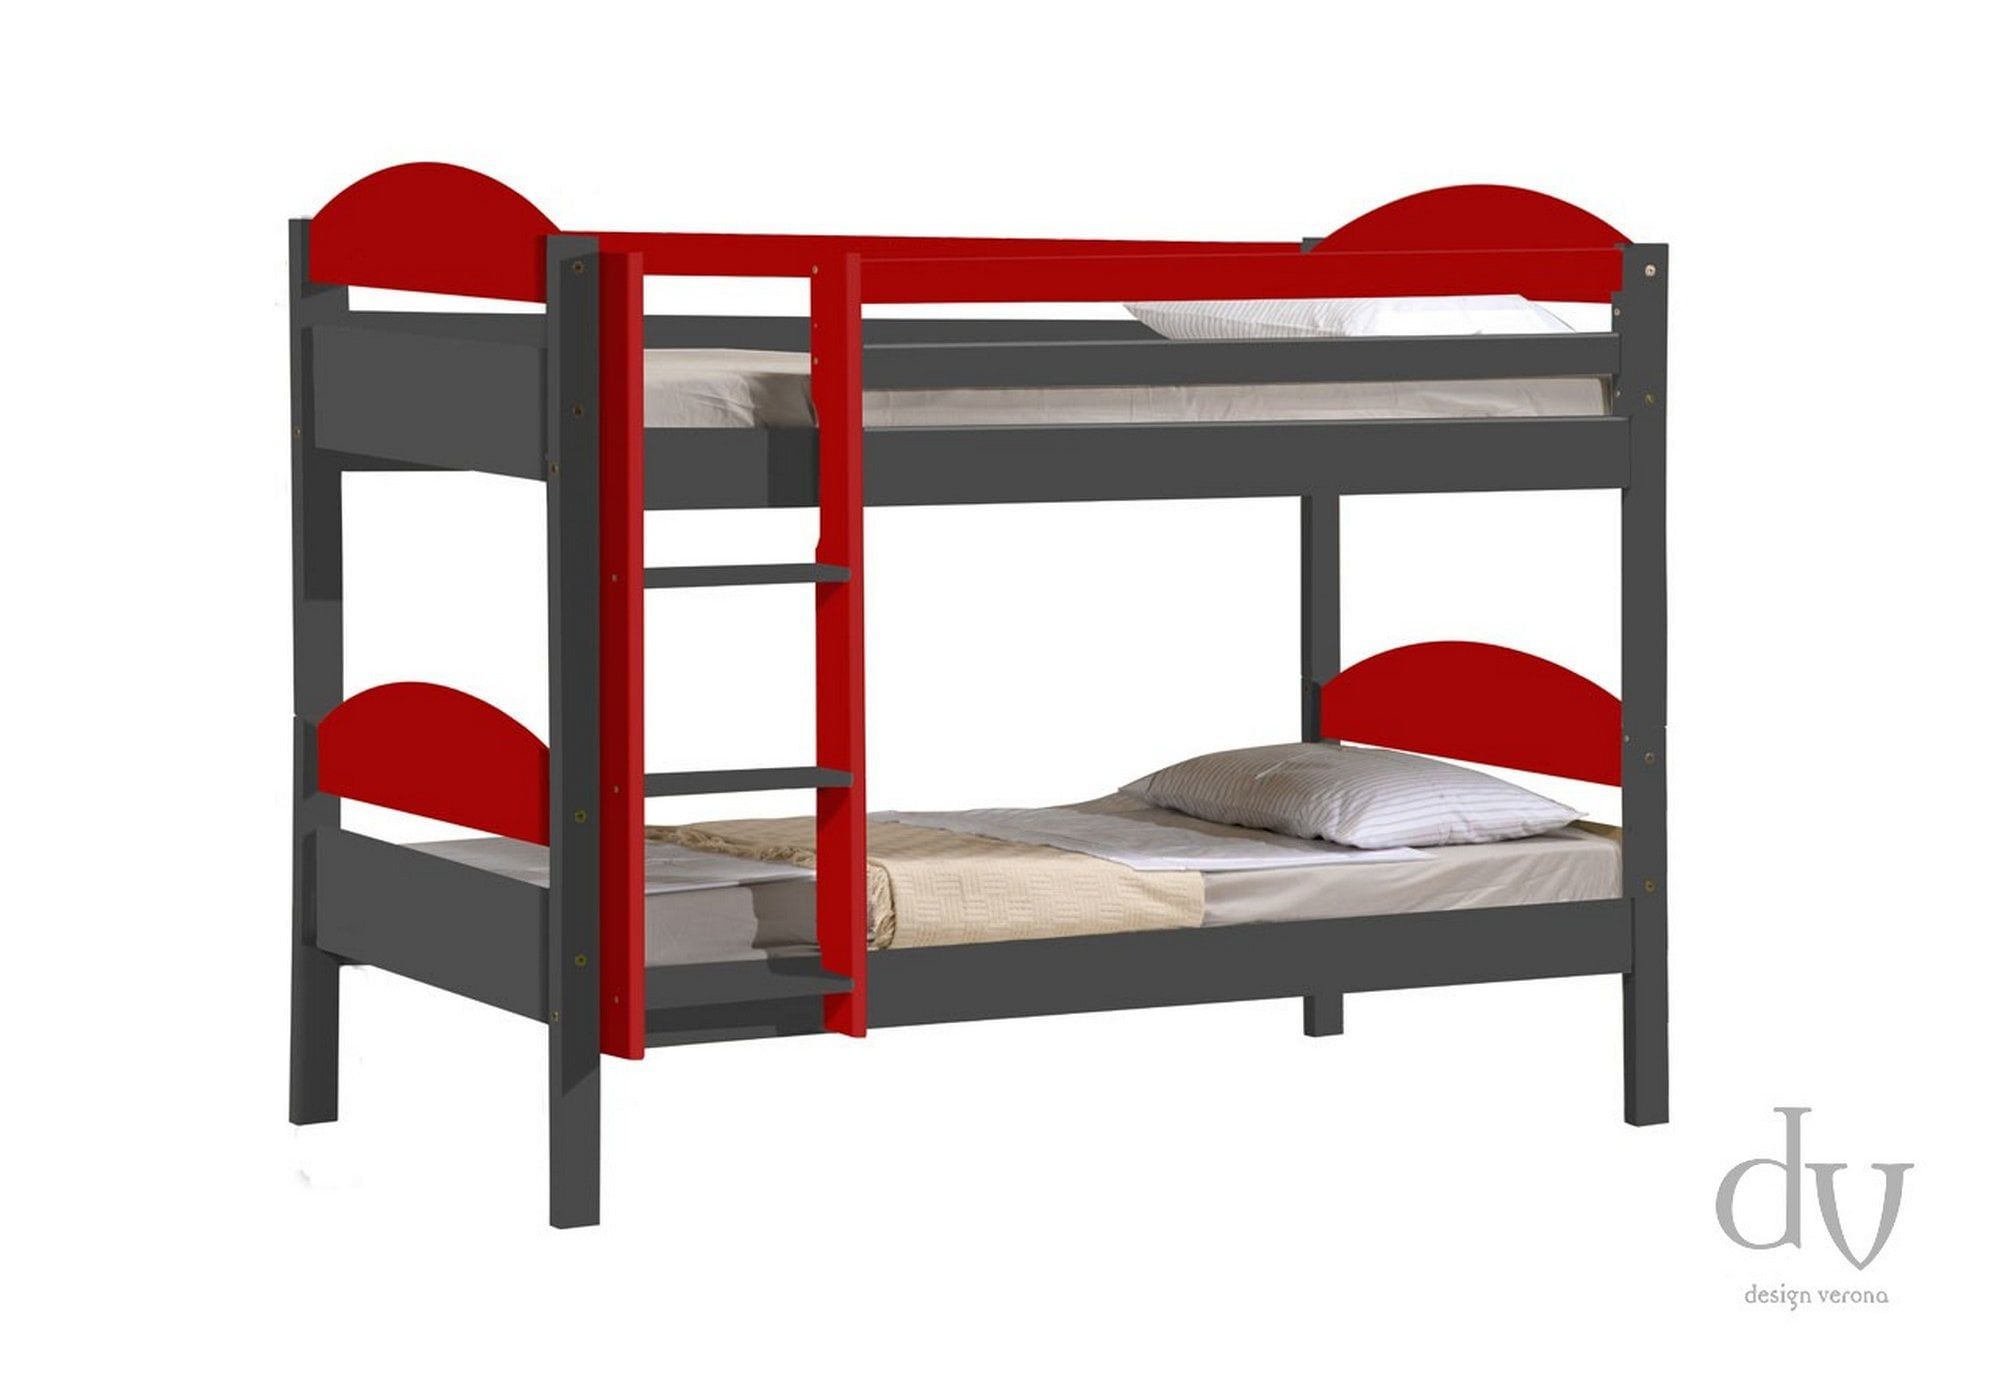 Picture of: Verona Design Verona Maximus Bunk Bed 3ft Graphite With Red Details Bunk Beds From Beds 4 Less Uk